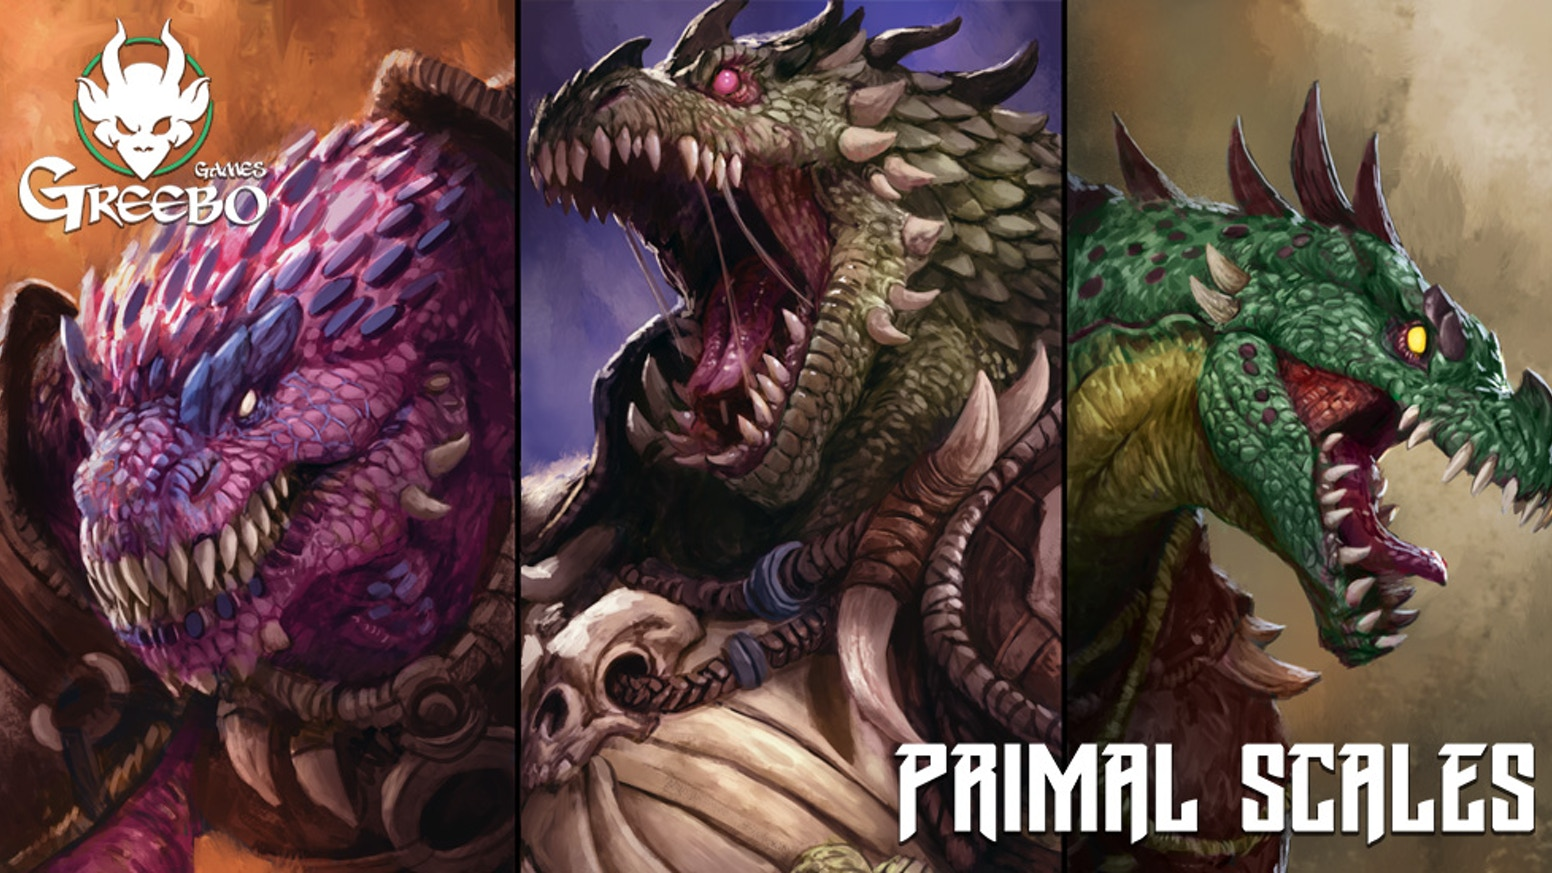 Krogall lizards, Poraka frogs and Systers of Karmiath. Which one will you choose? Life on the pitch has never been this brutal!